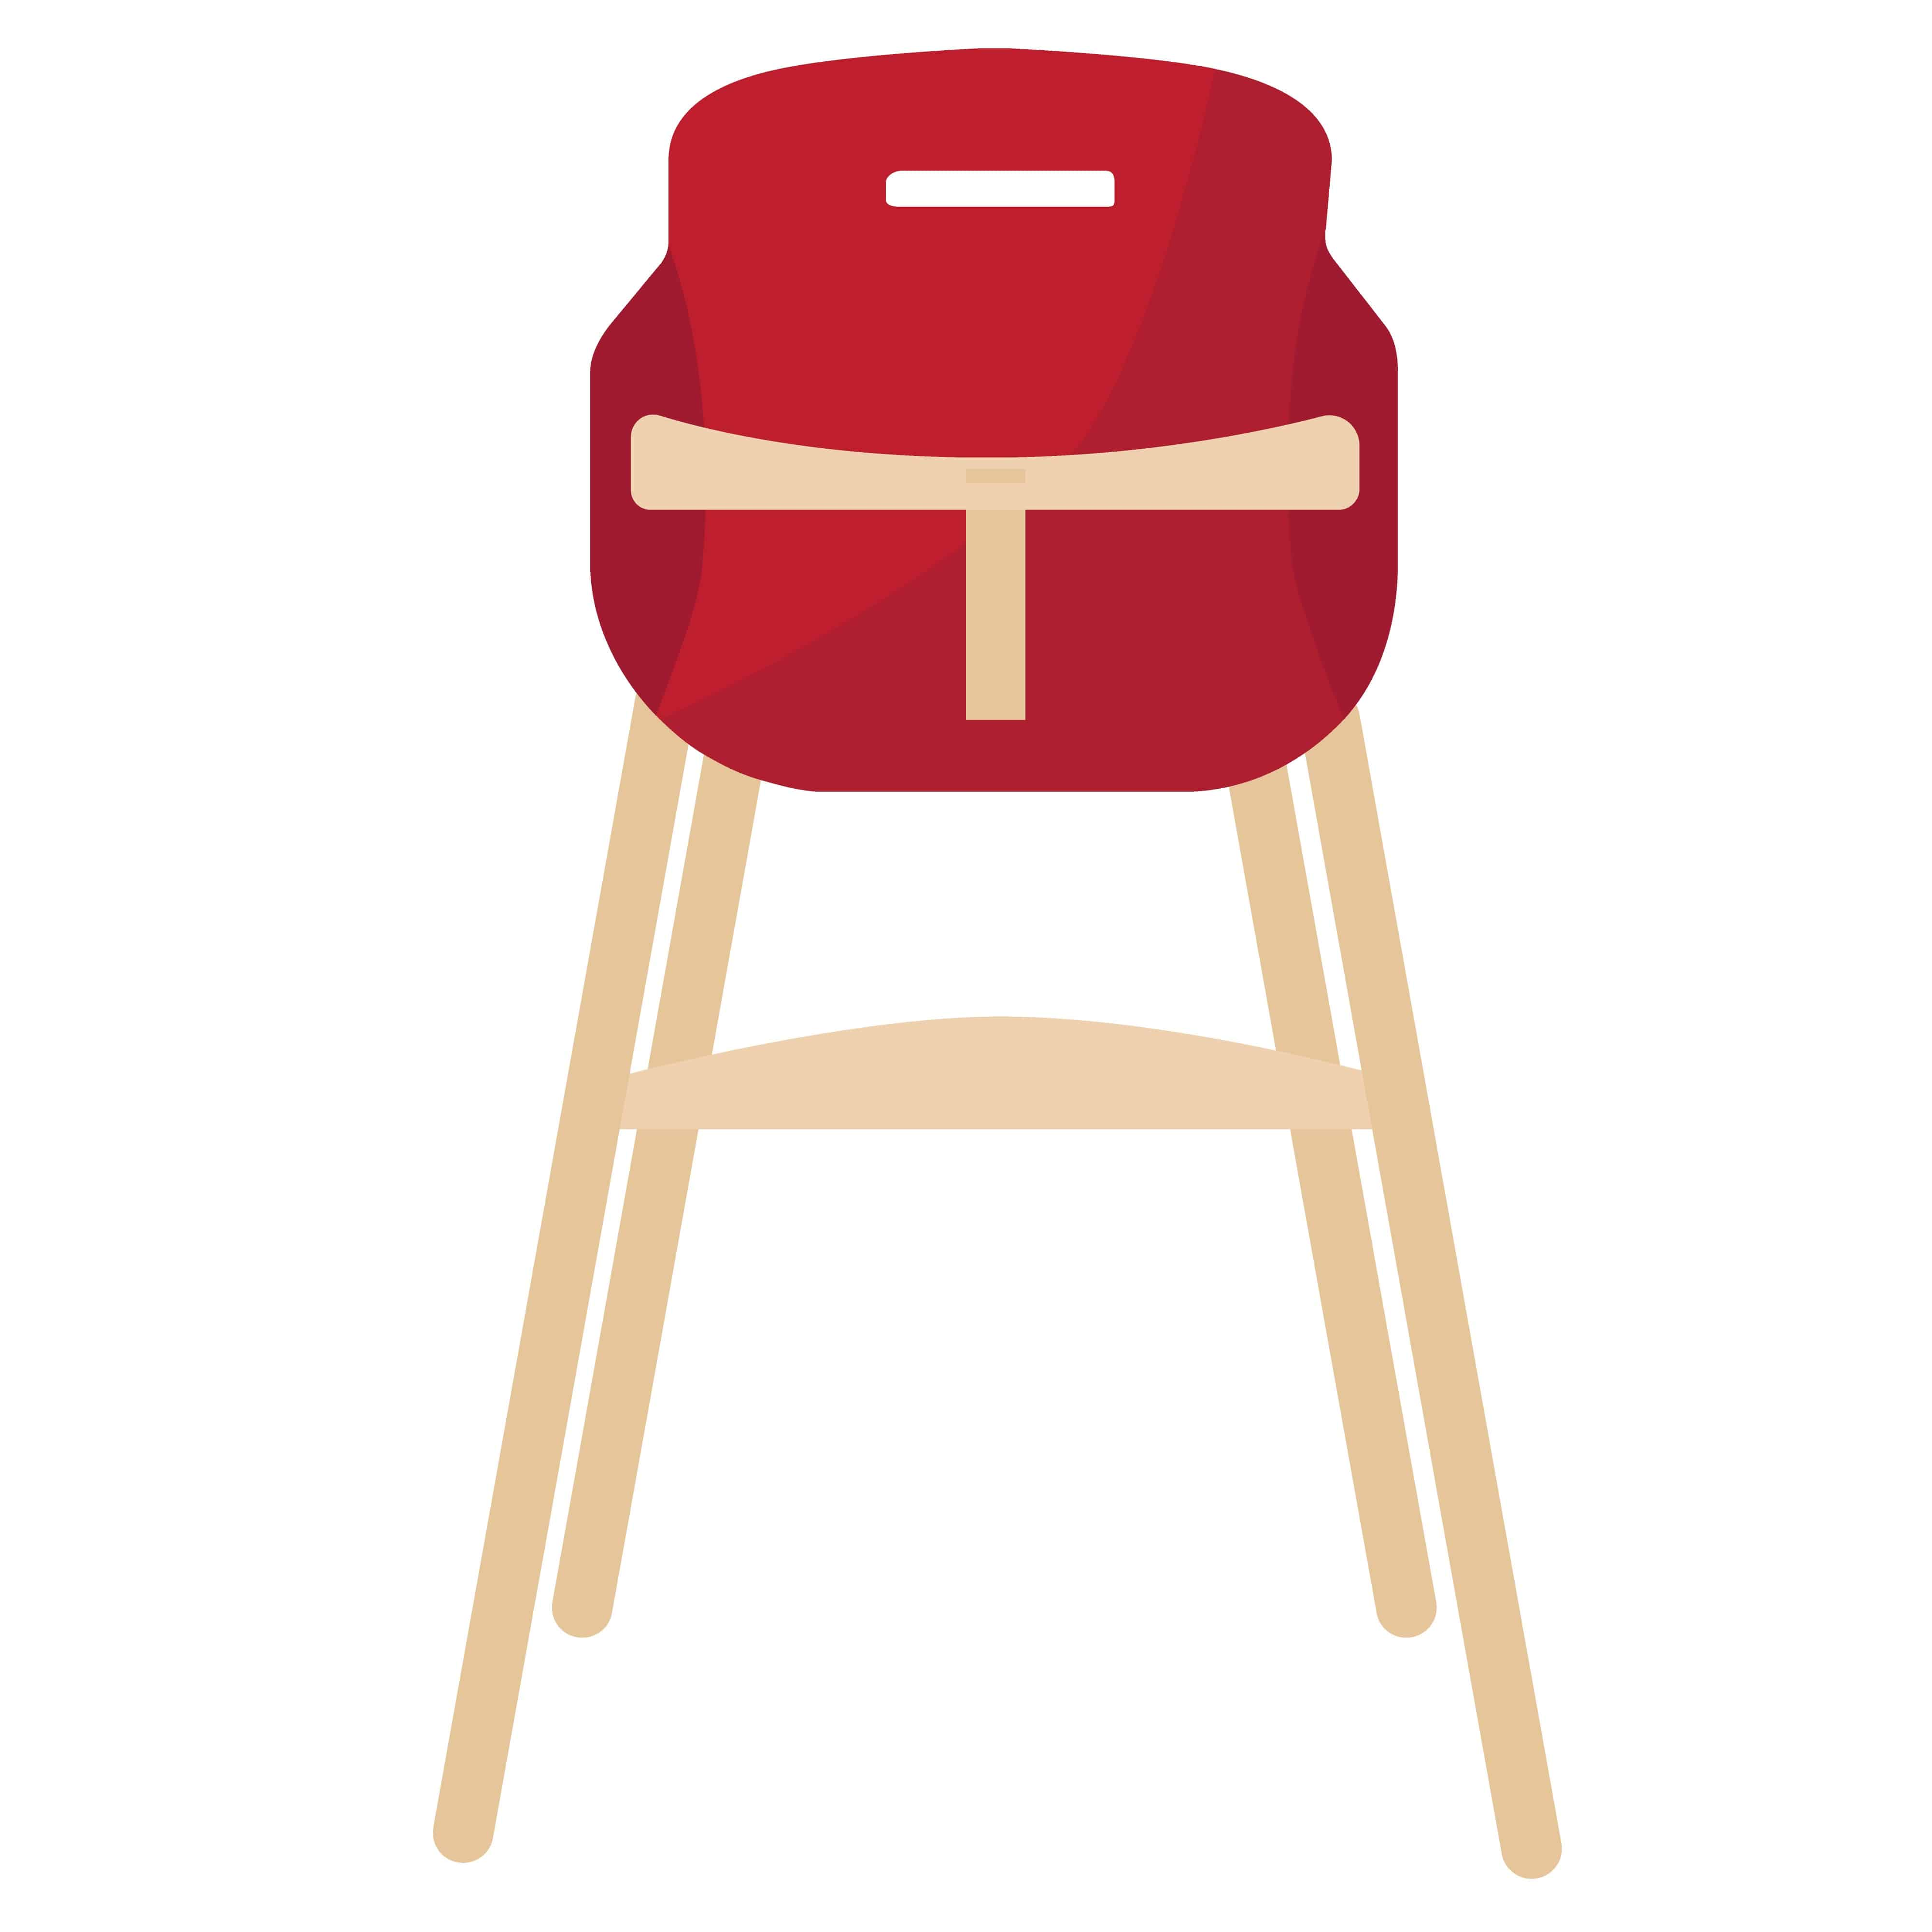 green high chair cedar adirondack chairs sale graco recall berger and attorneys